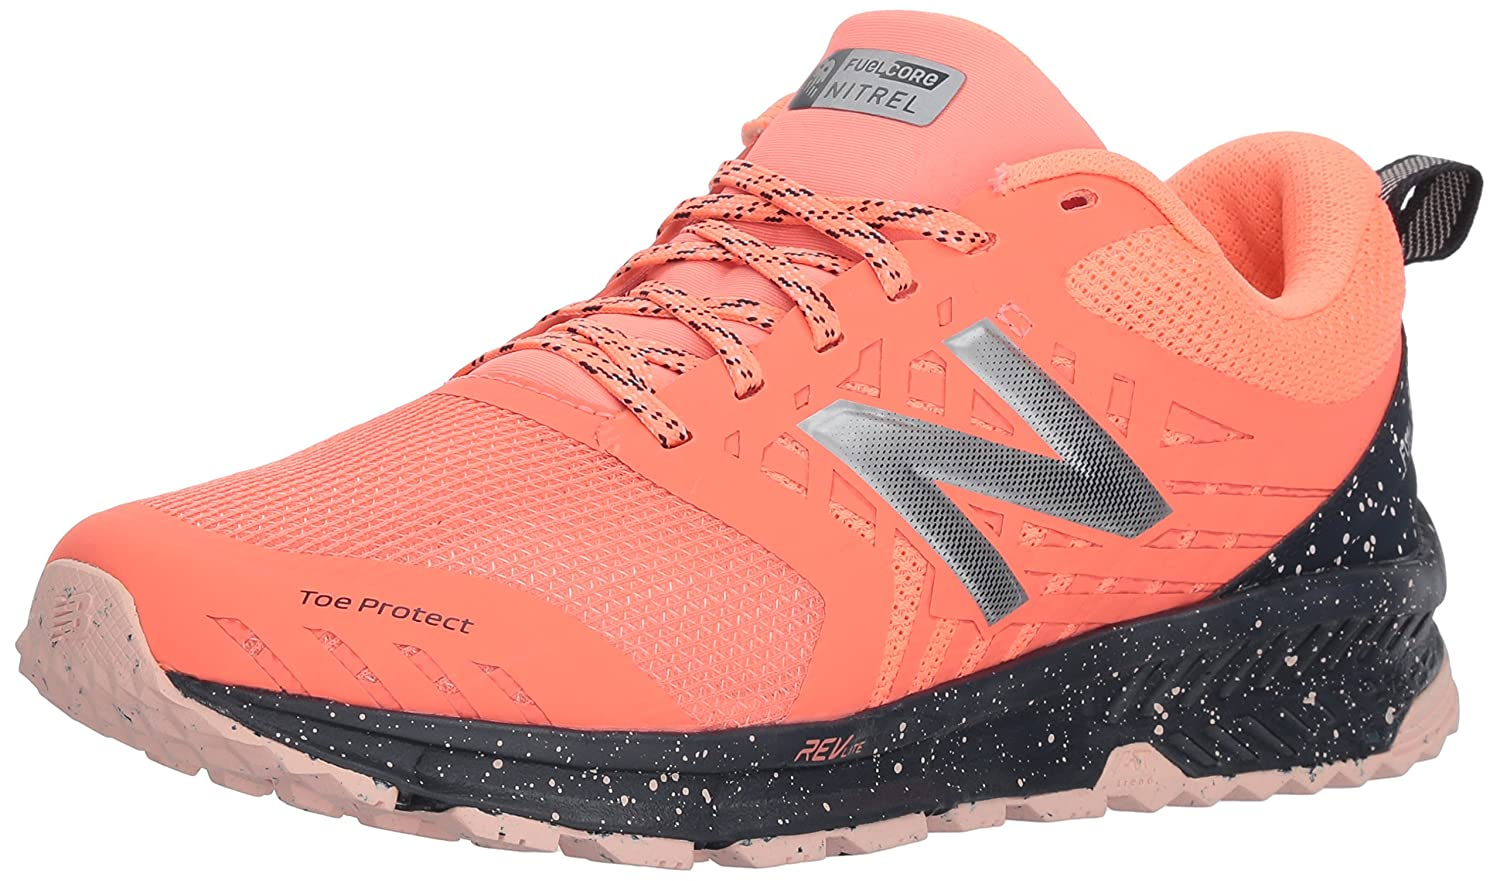 New Balance Women's Nitrel v1 FuelCore Trail Running Shoe B0751RBN5K 6 B(M) US|Fiji